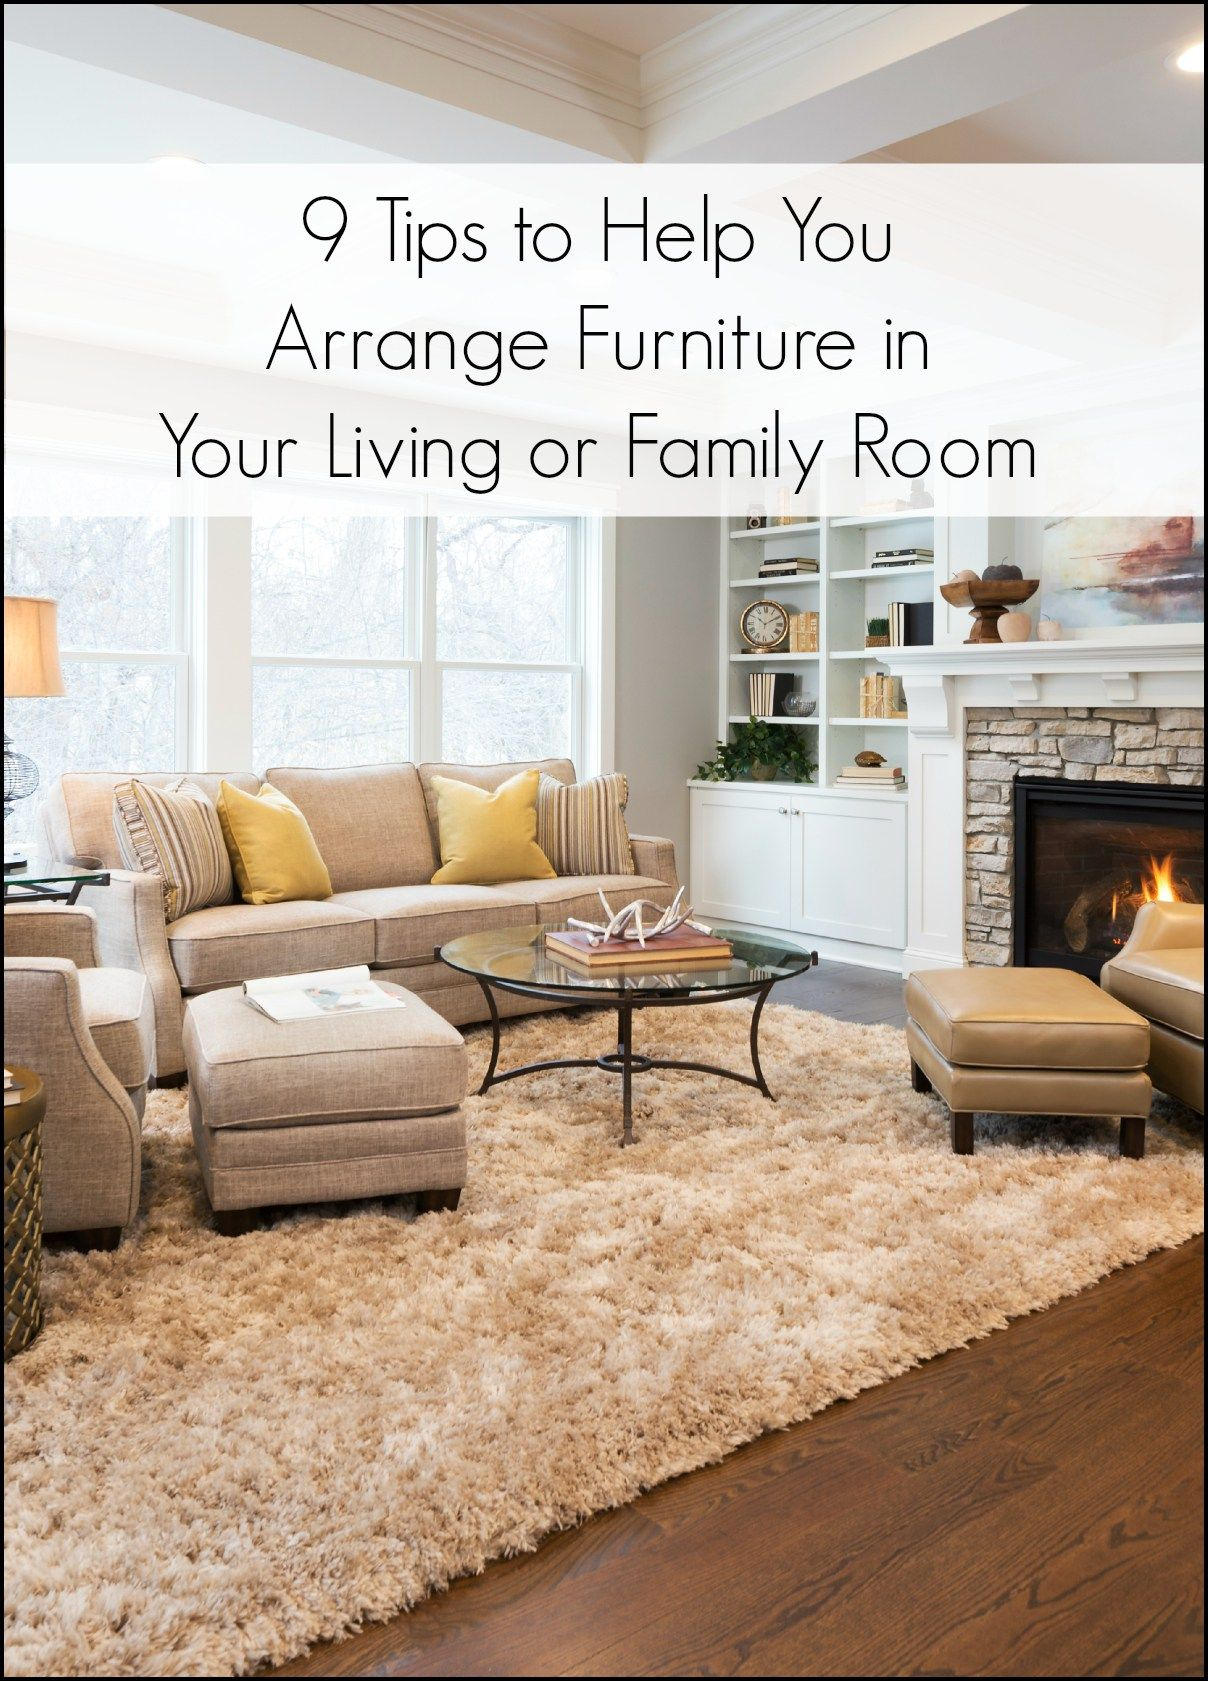 Arrange Living Room Furniture Design With Grey Sofa 9 Tips For Arranging In A Or Family To Help You Your